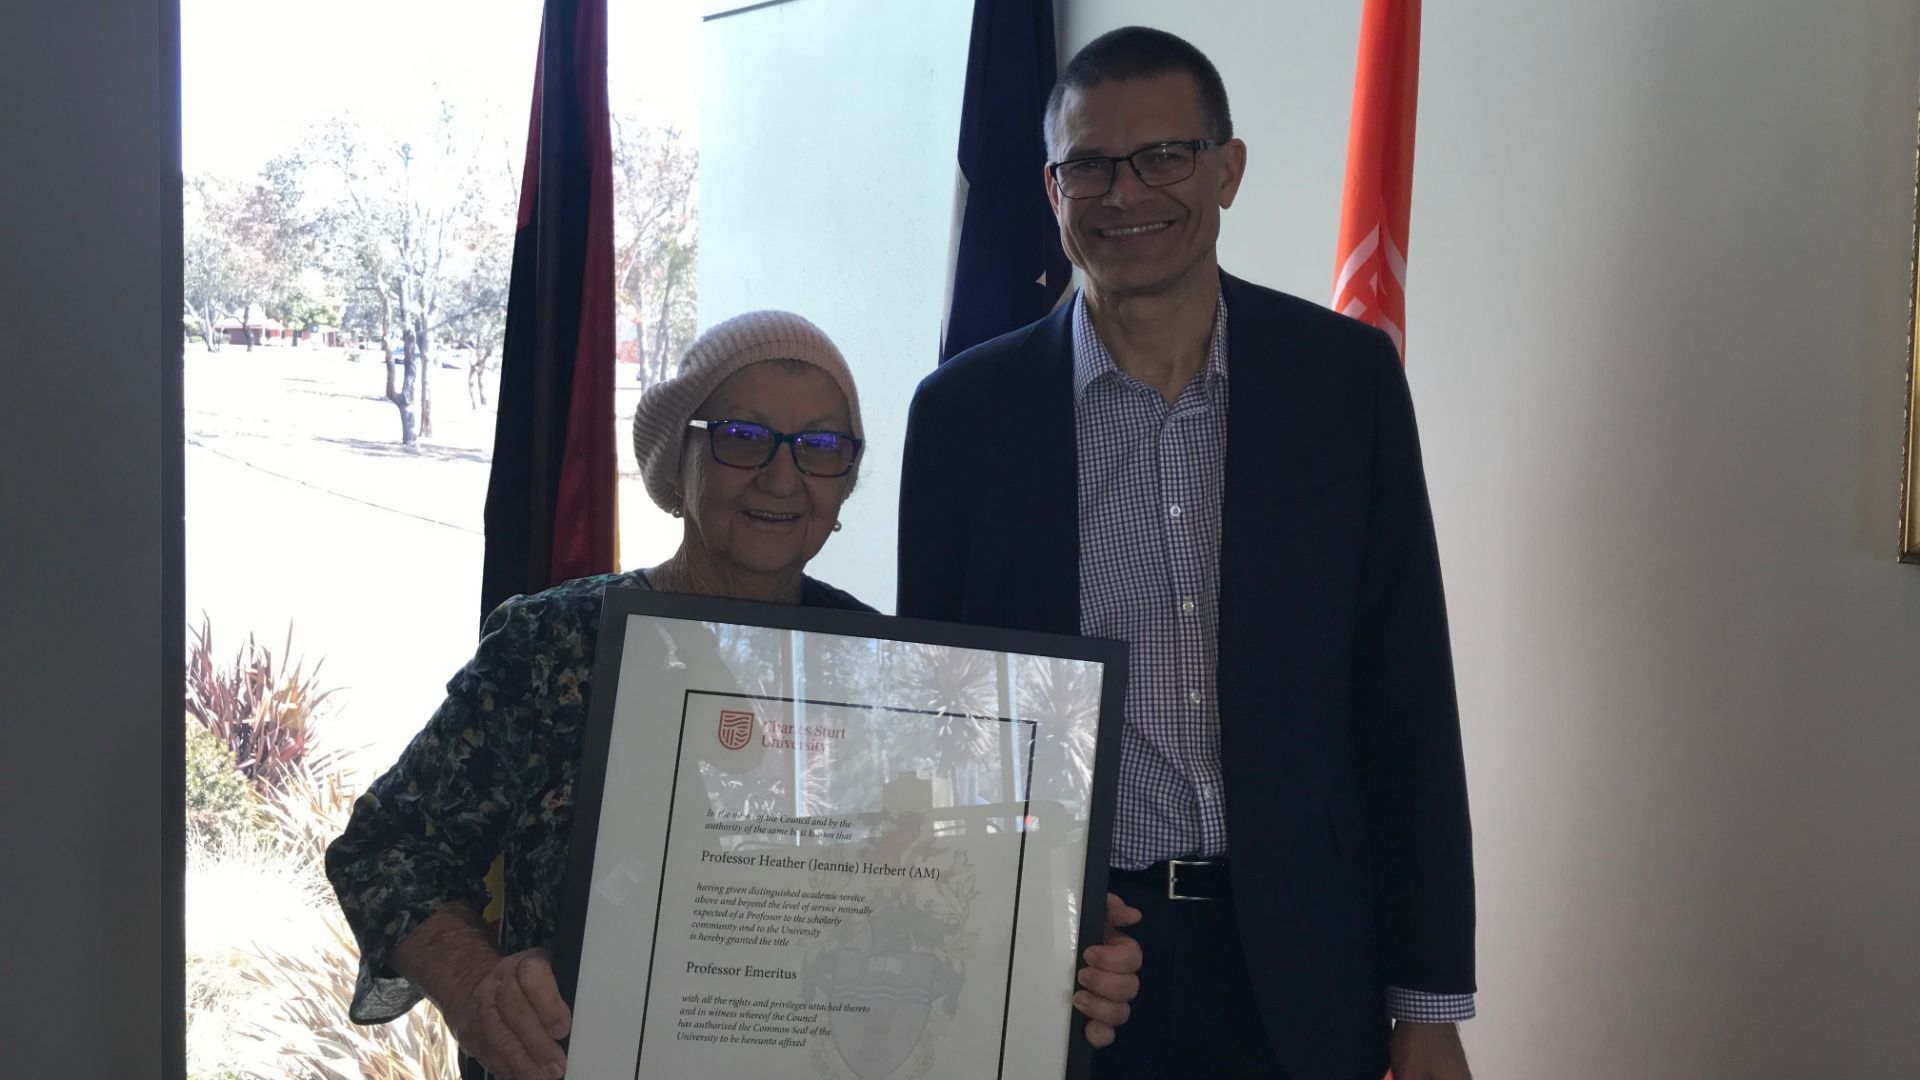 Heather 'Jeannie' Herbert conferred title of Emeritus Professor for service to Indigenous education